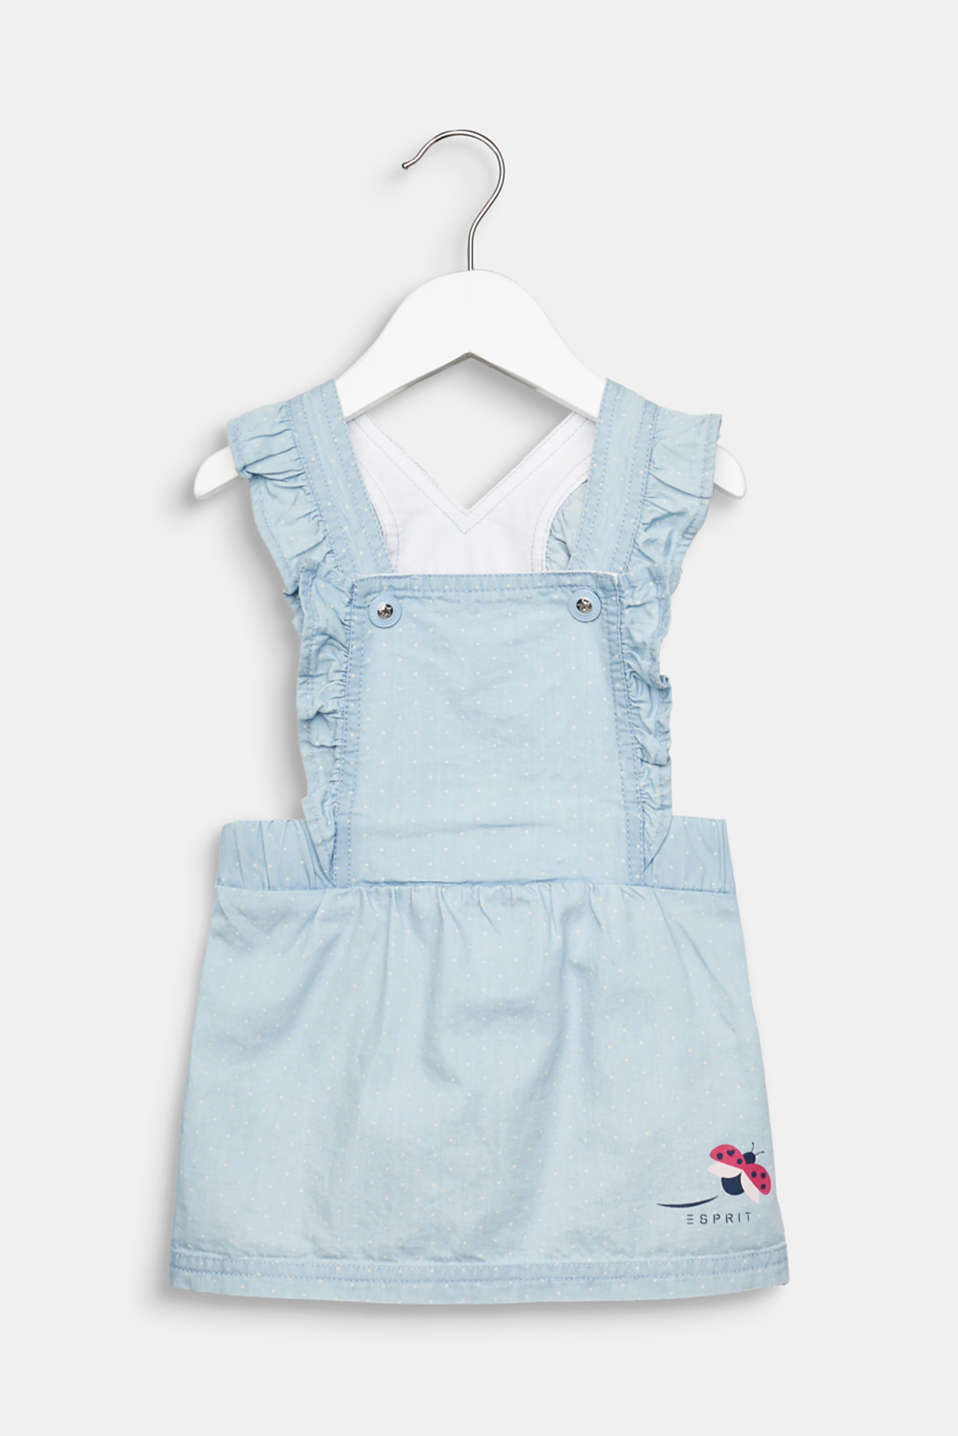 Esprit - Denim pinafore dress, 100% cotton